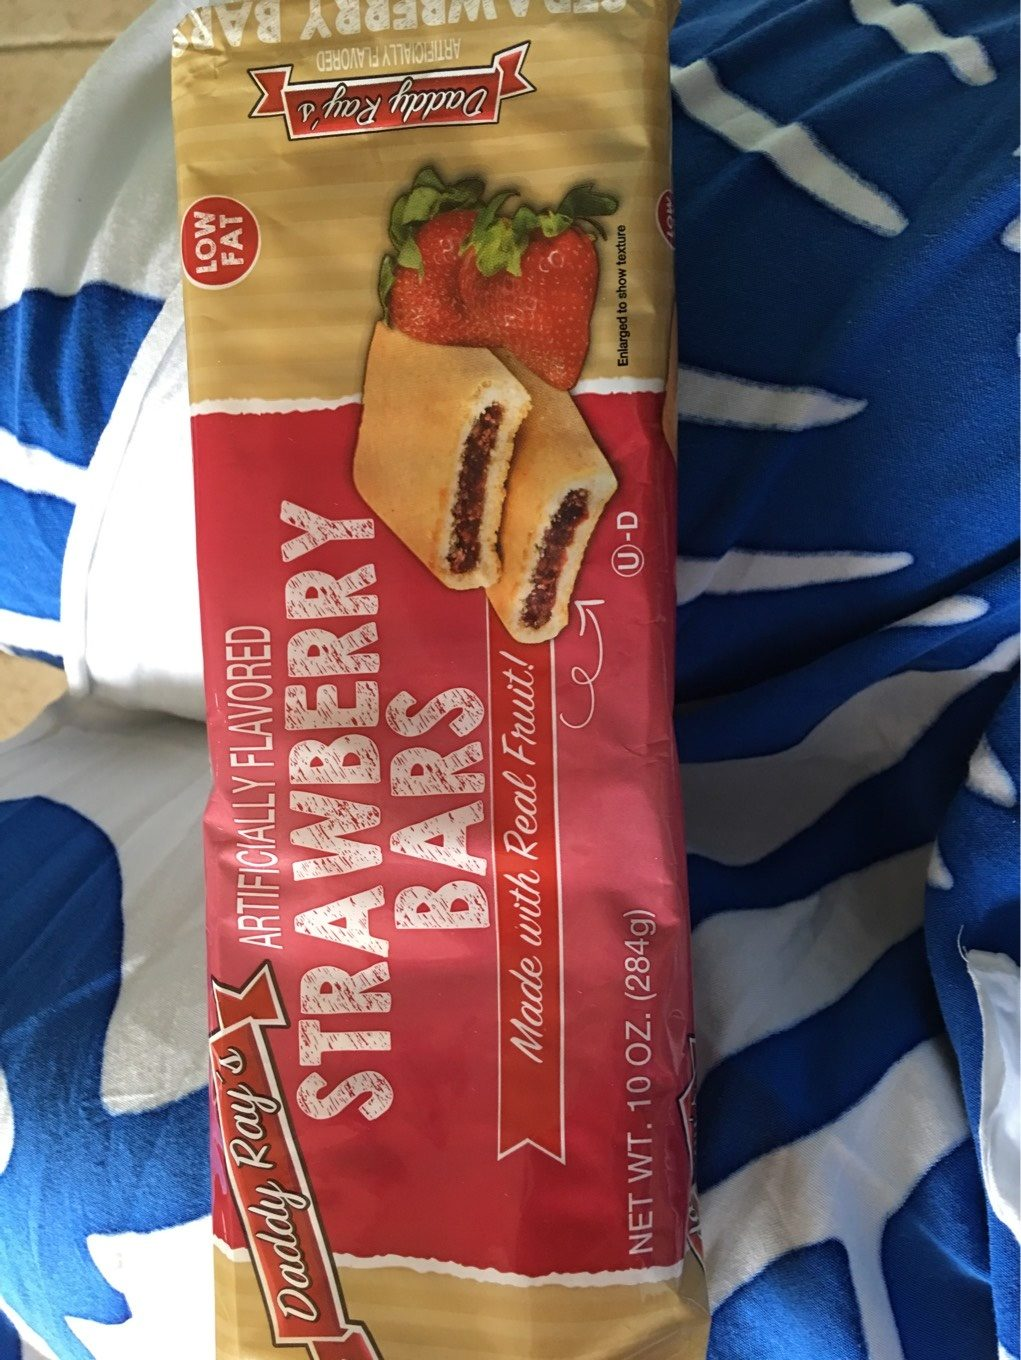 Strawberry Bars - Product